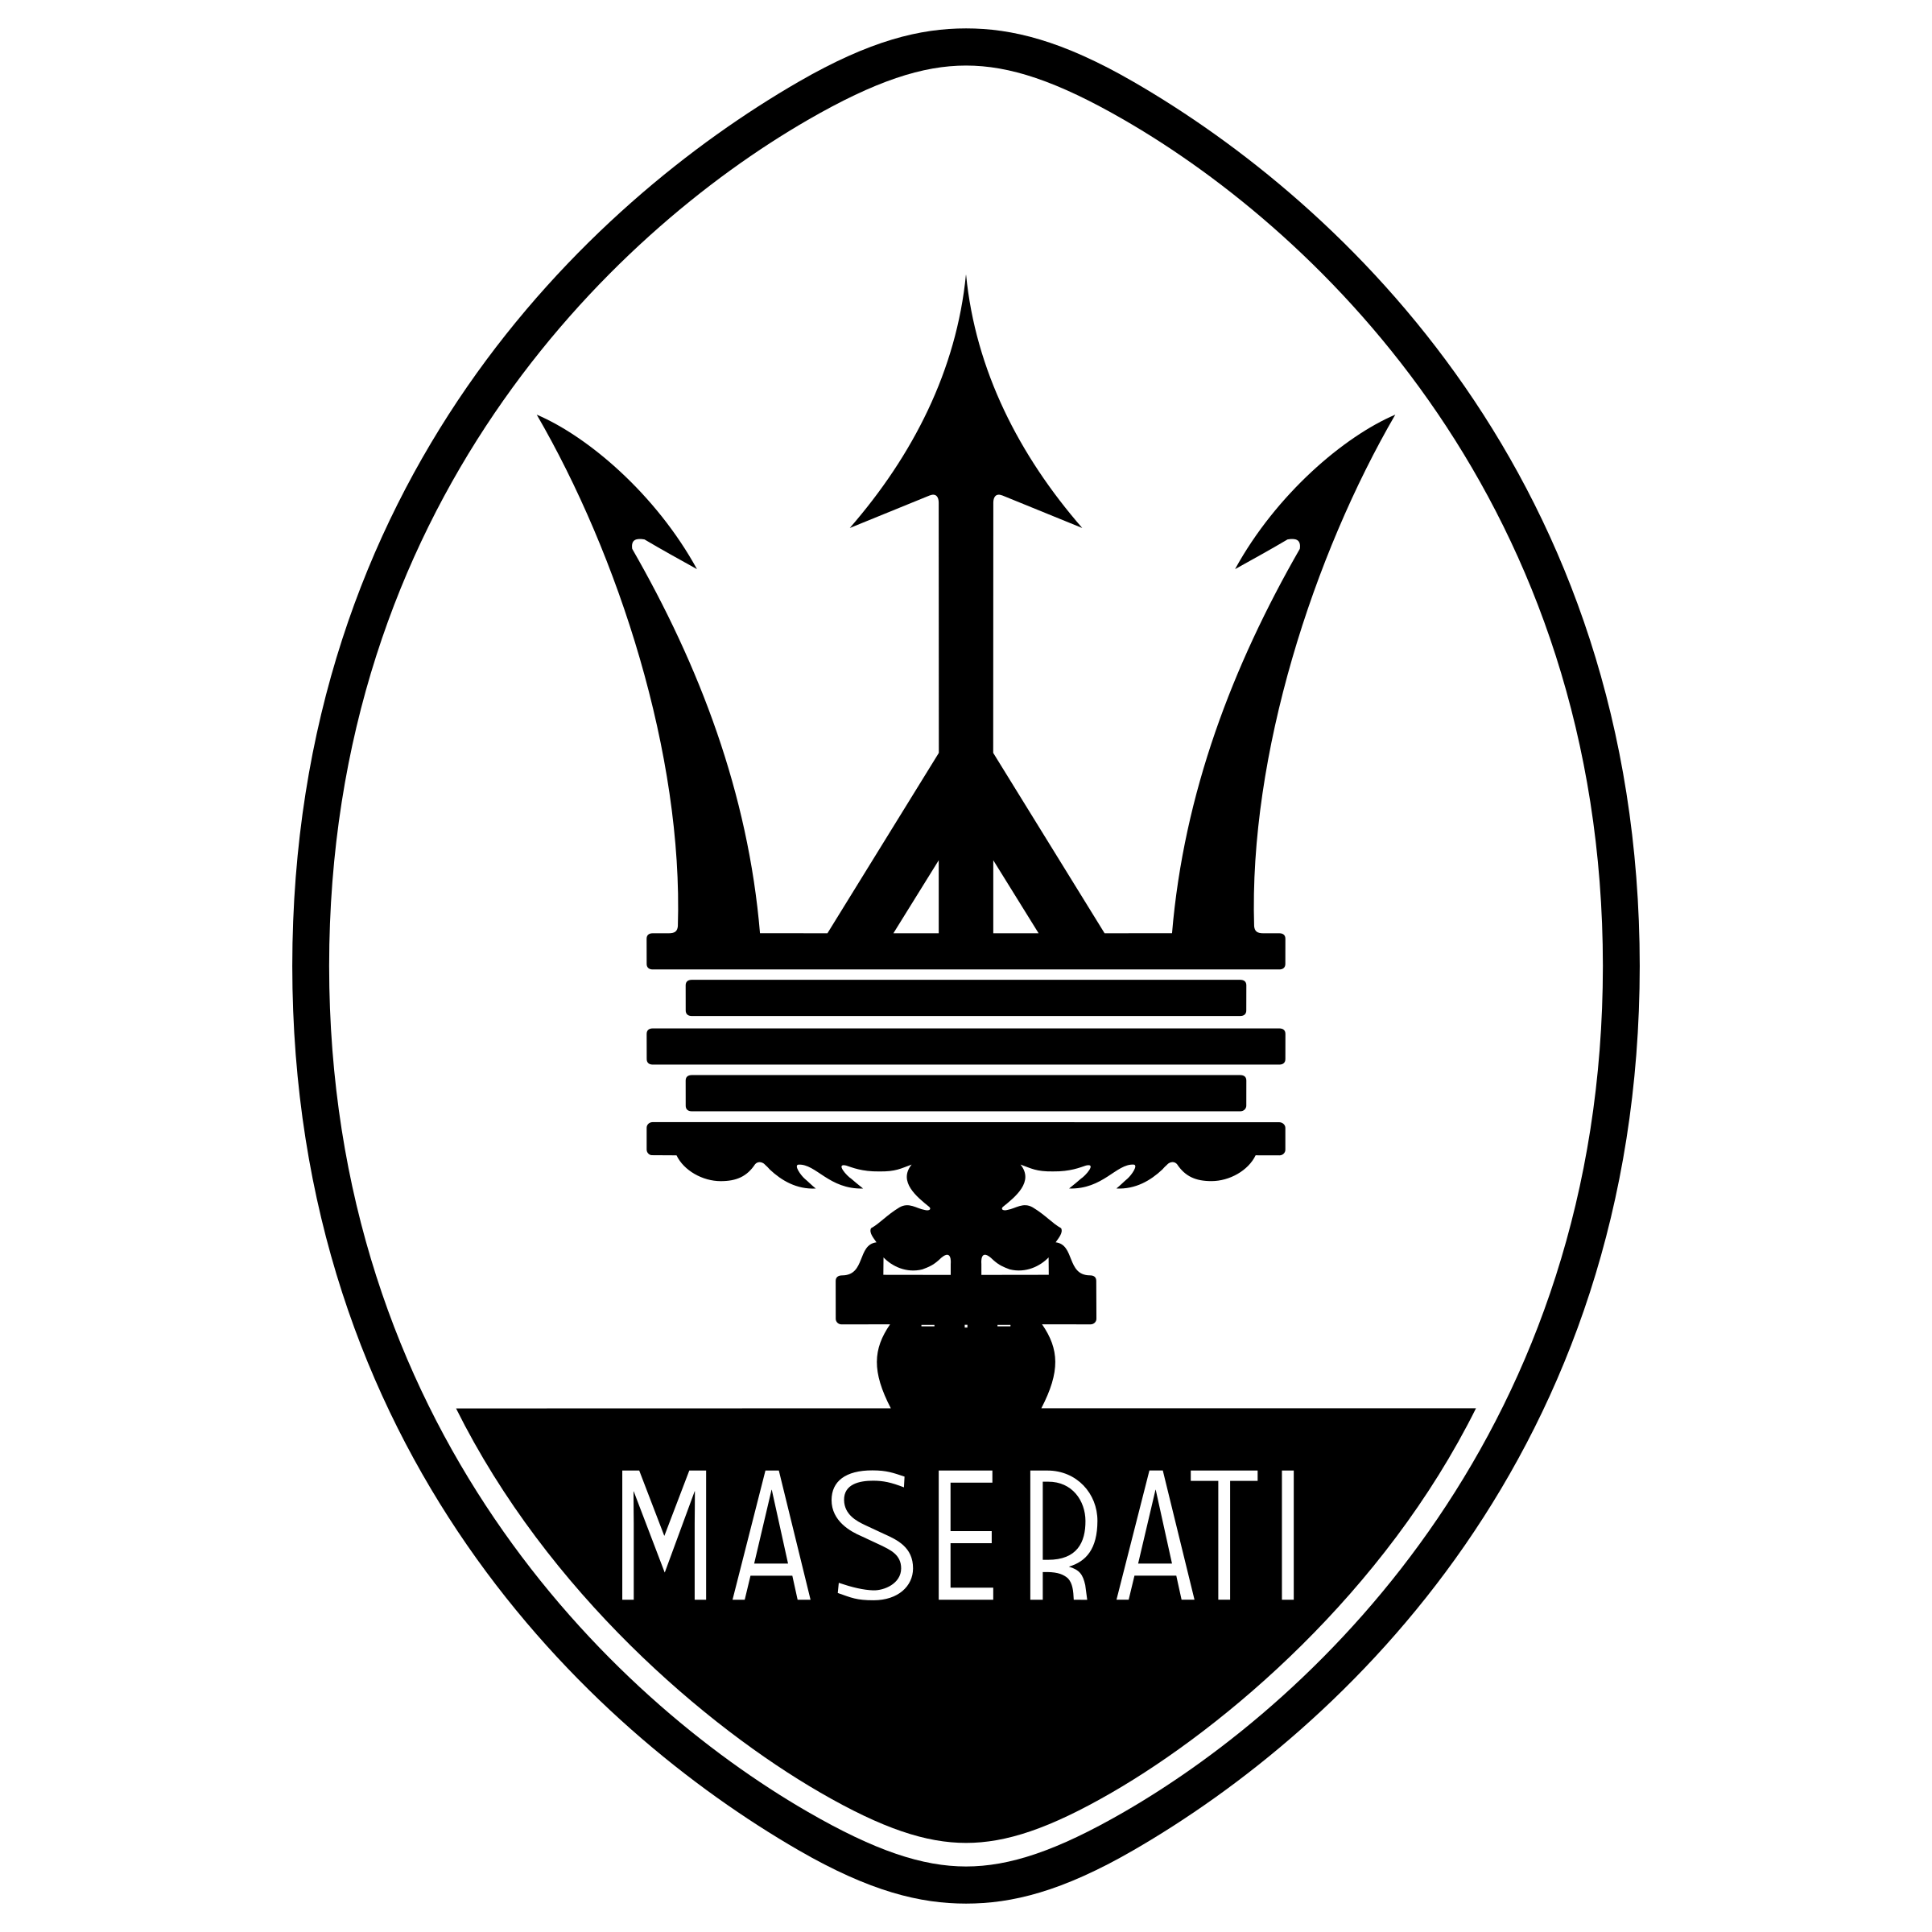 Maserati logo clipart png black and white library Maserati logo PNG png black and white library